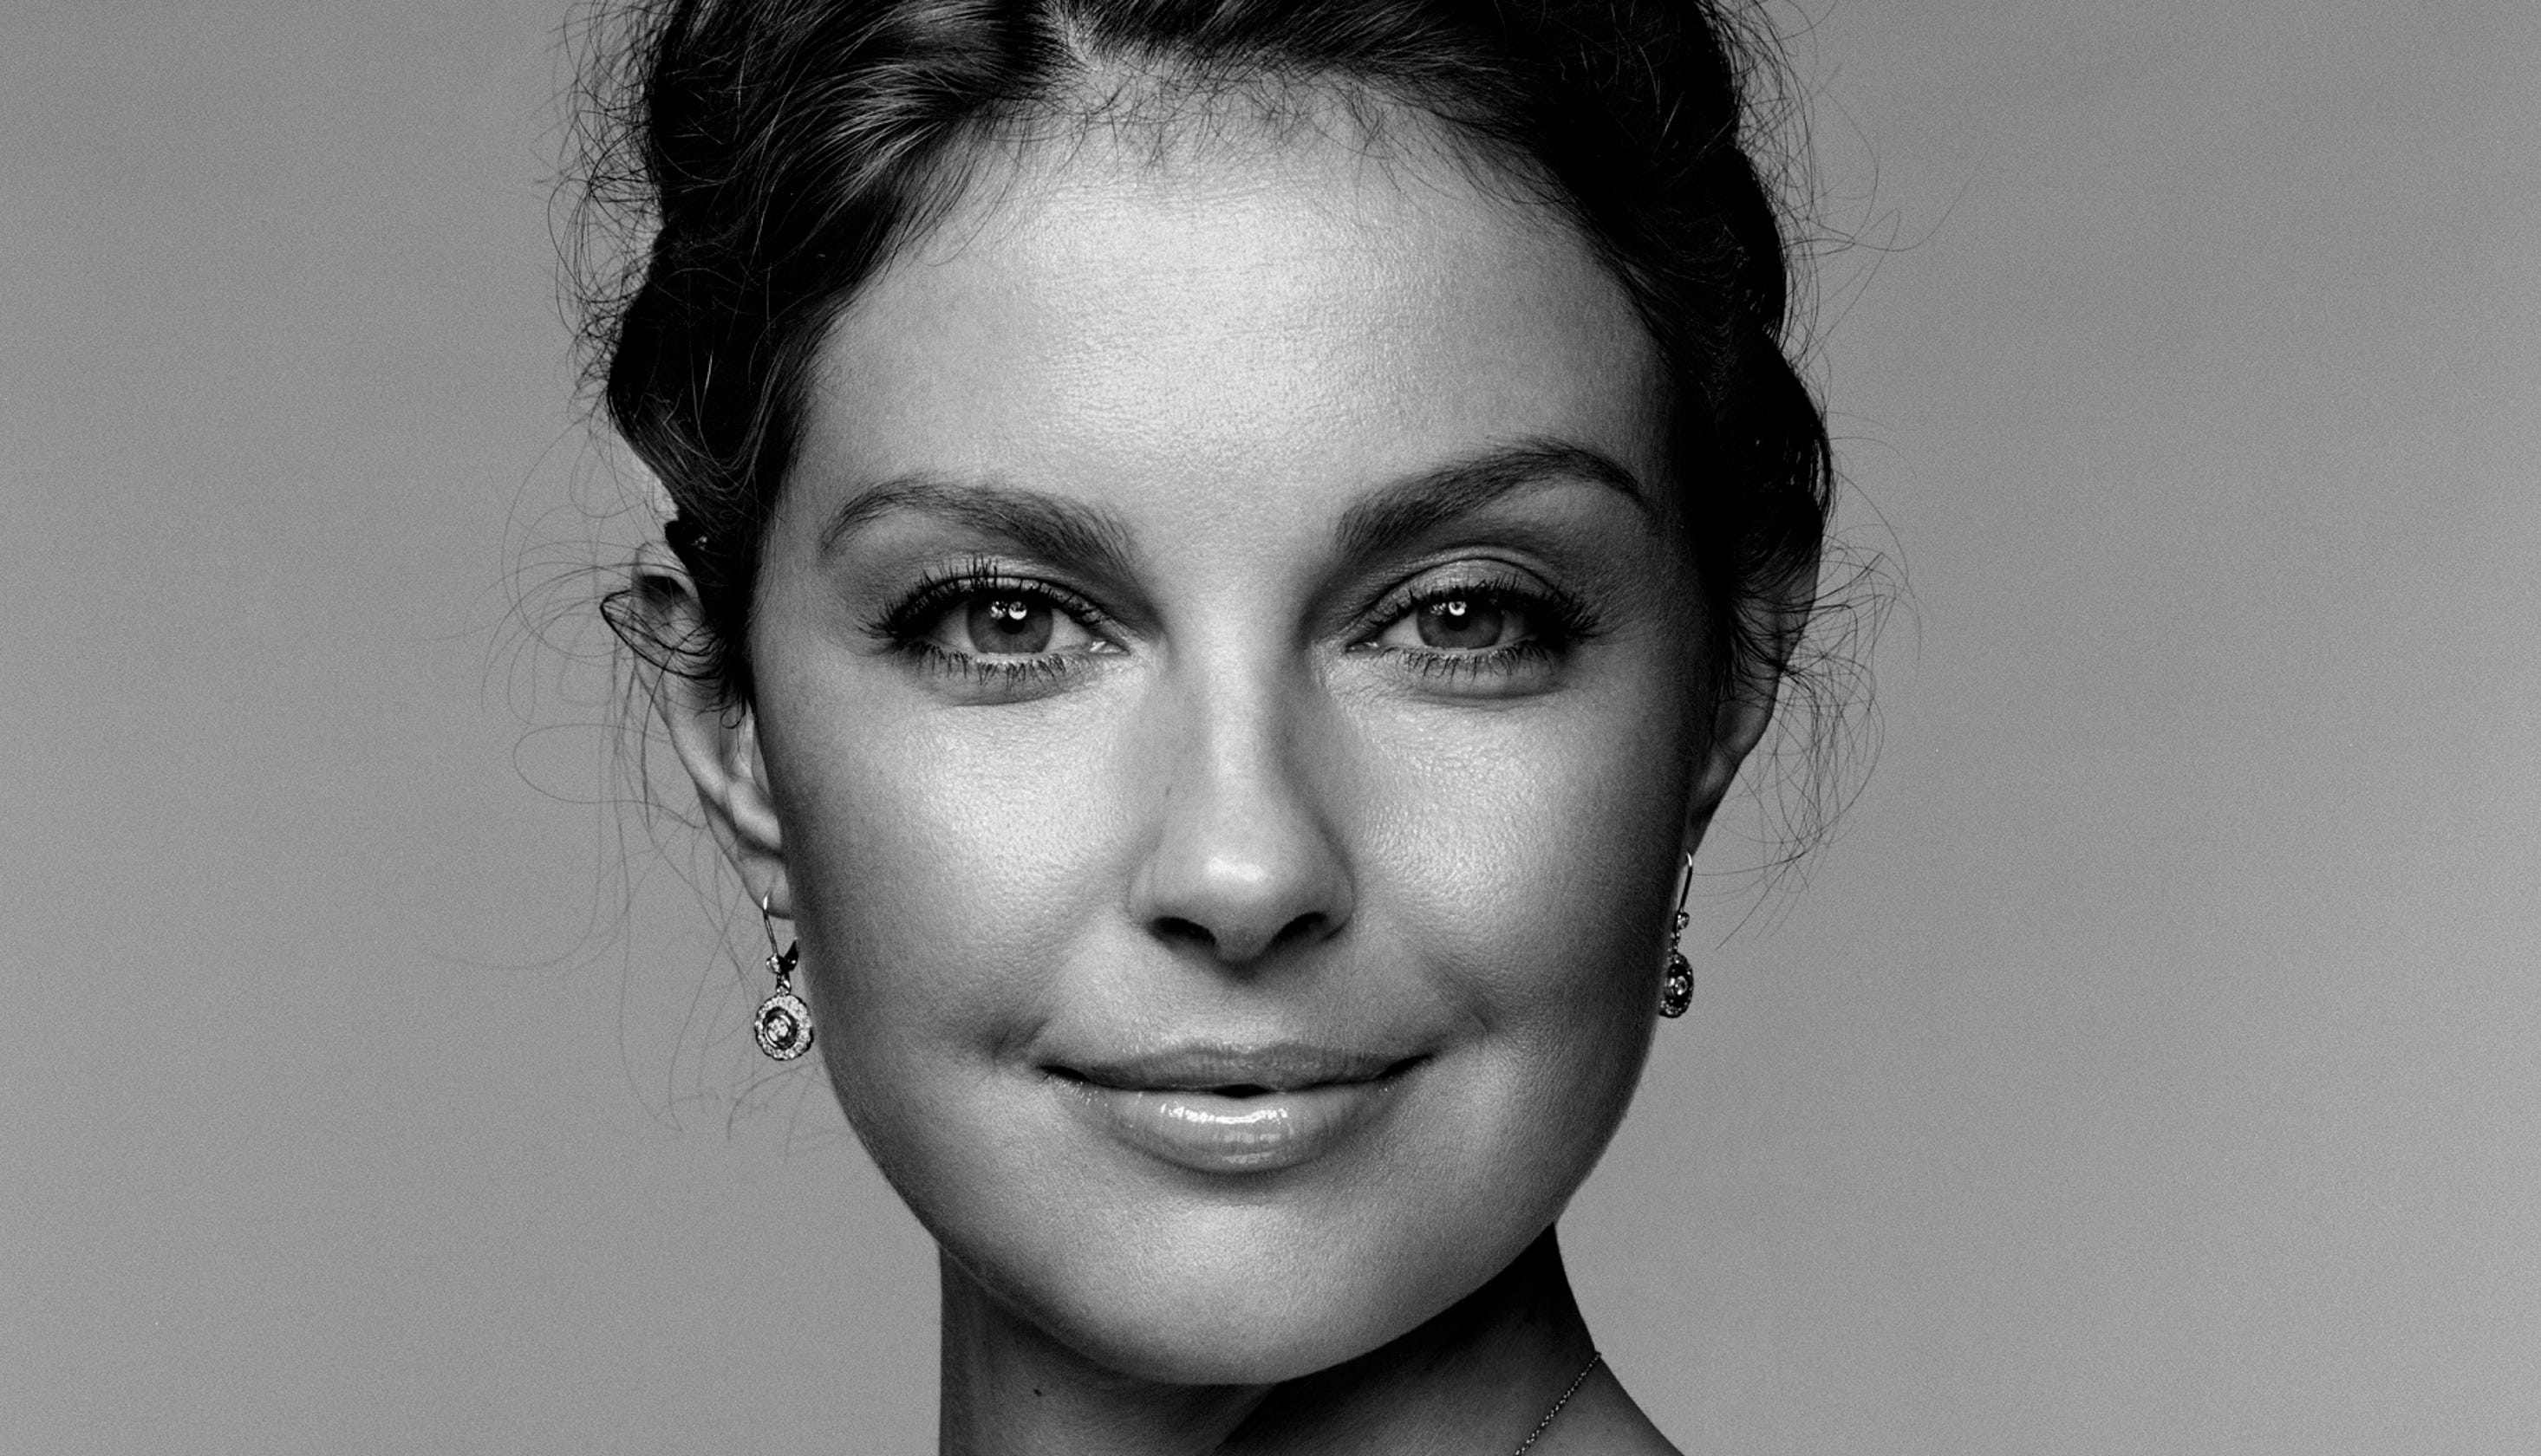 Ashley Judd answers 5 questions about her #MeToo activism